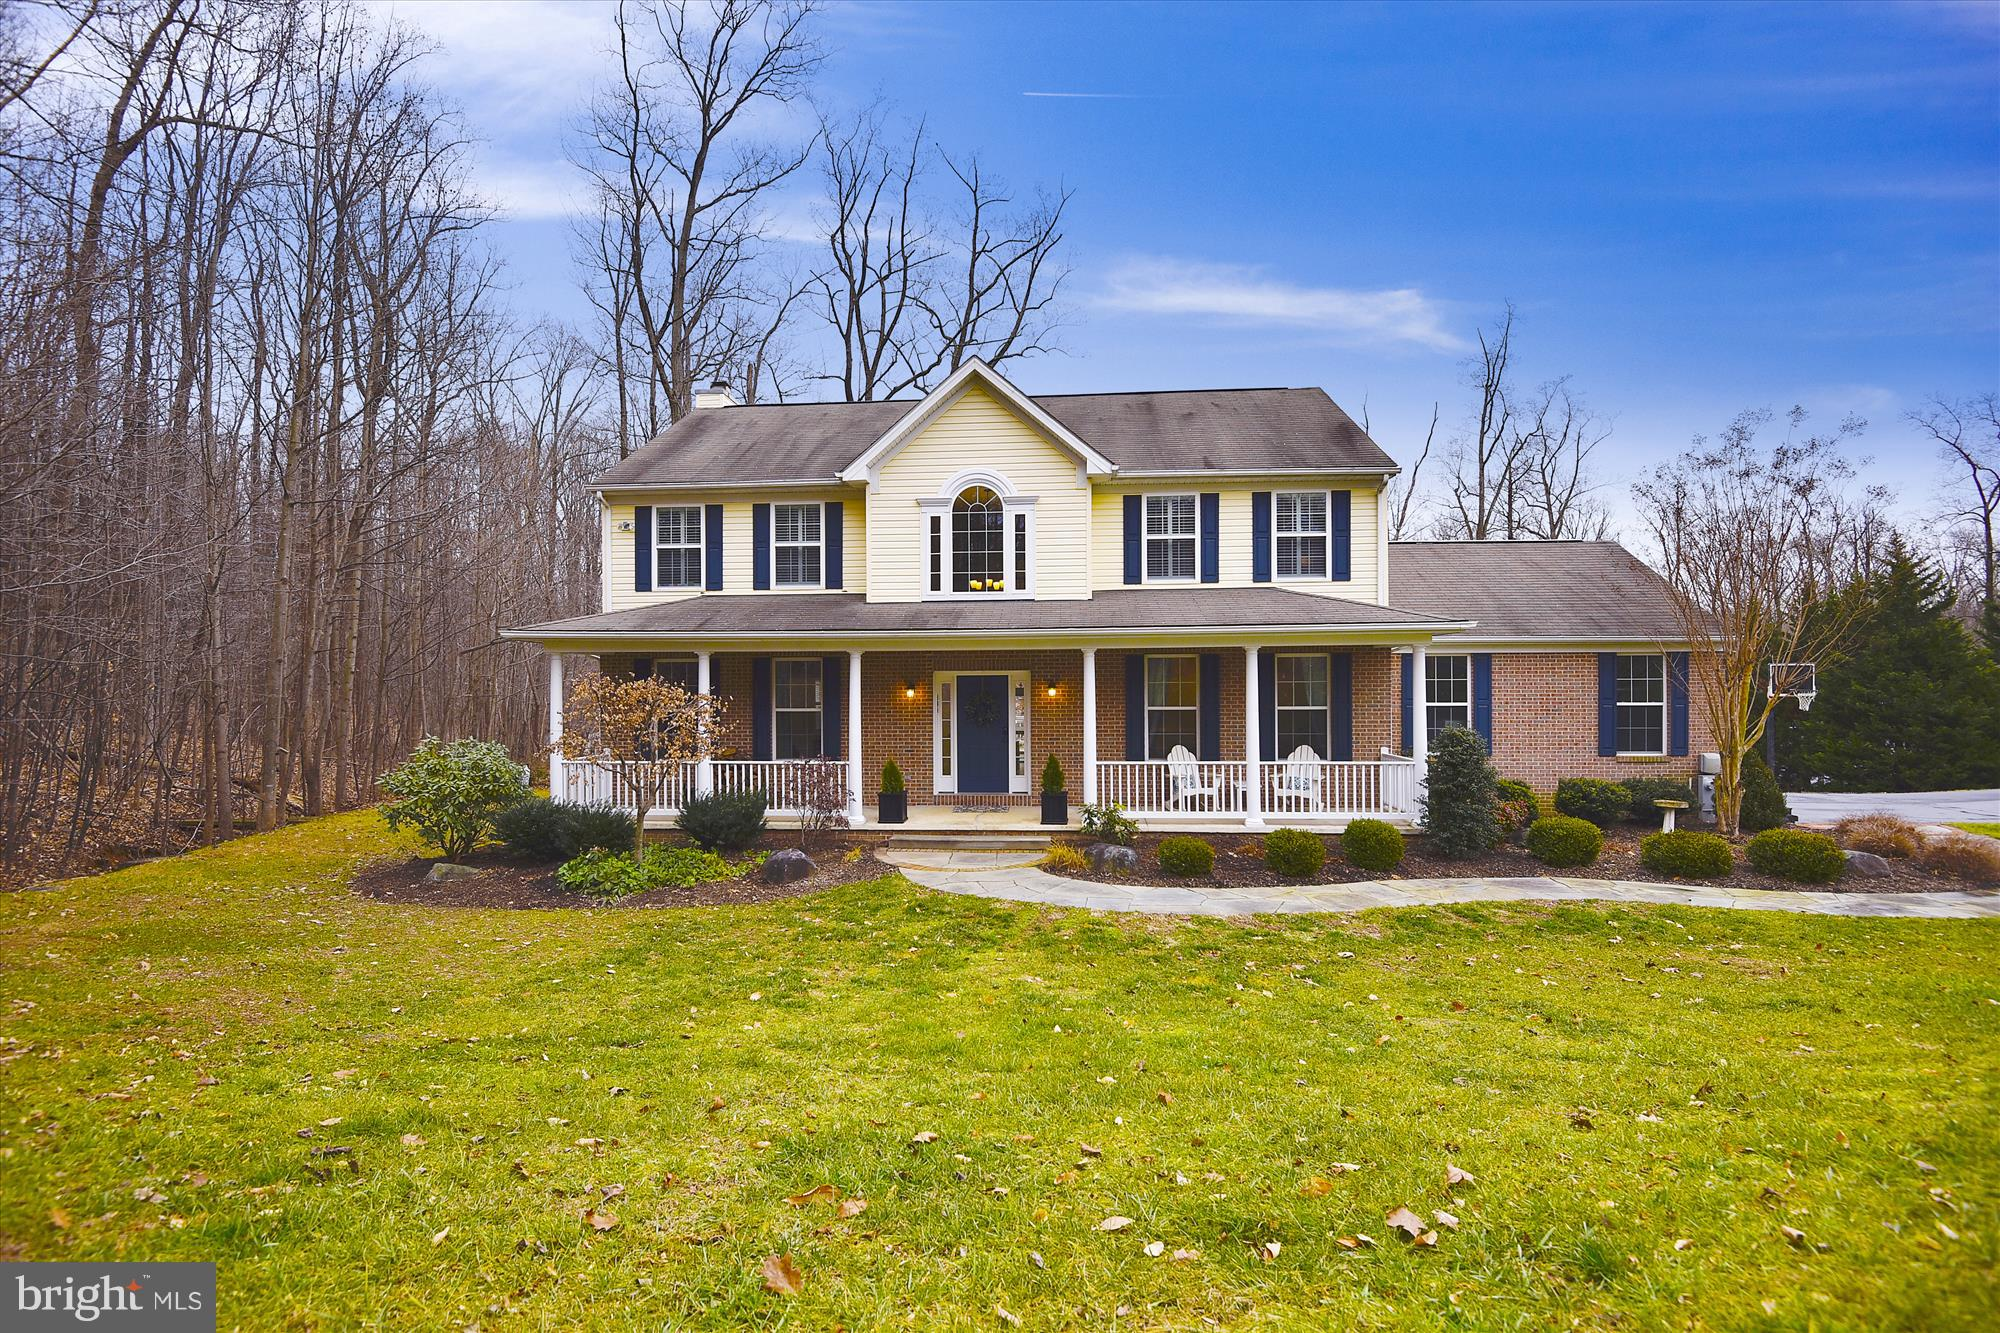 484 STRATFORD ROAD, FALLSTON, MD 21047